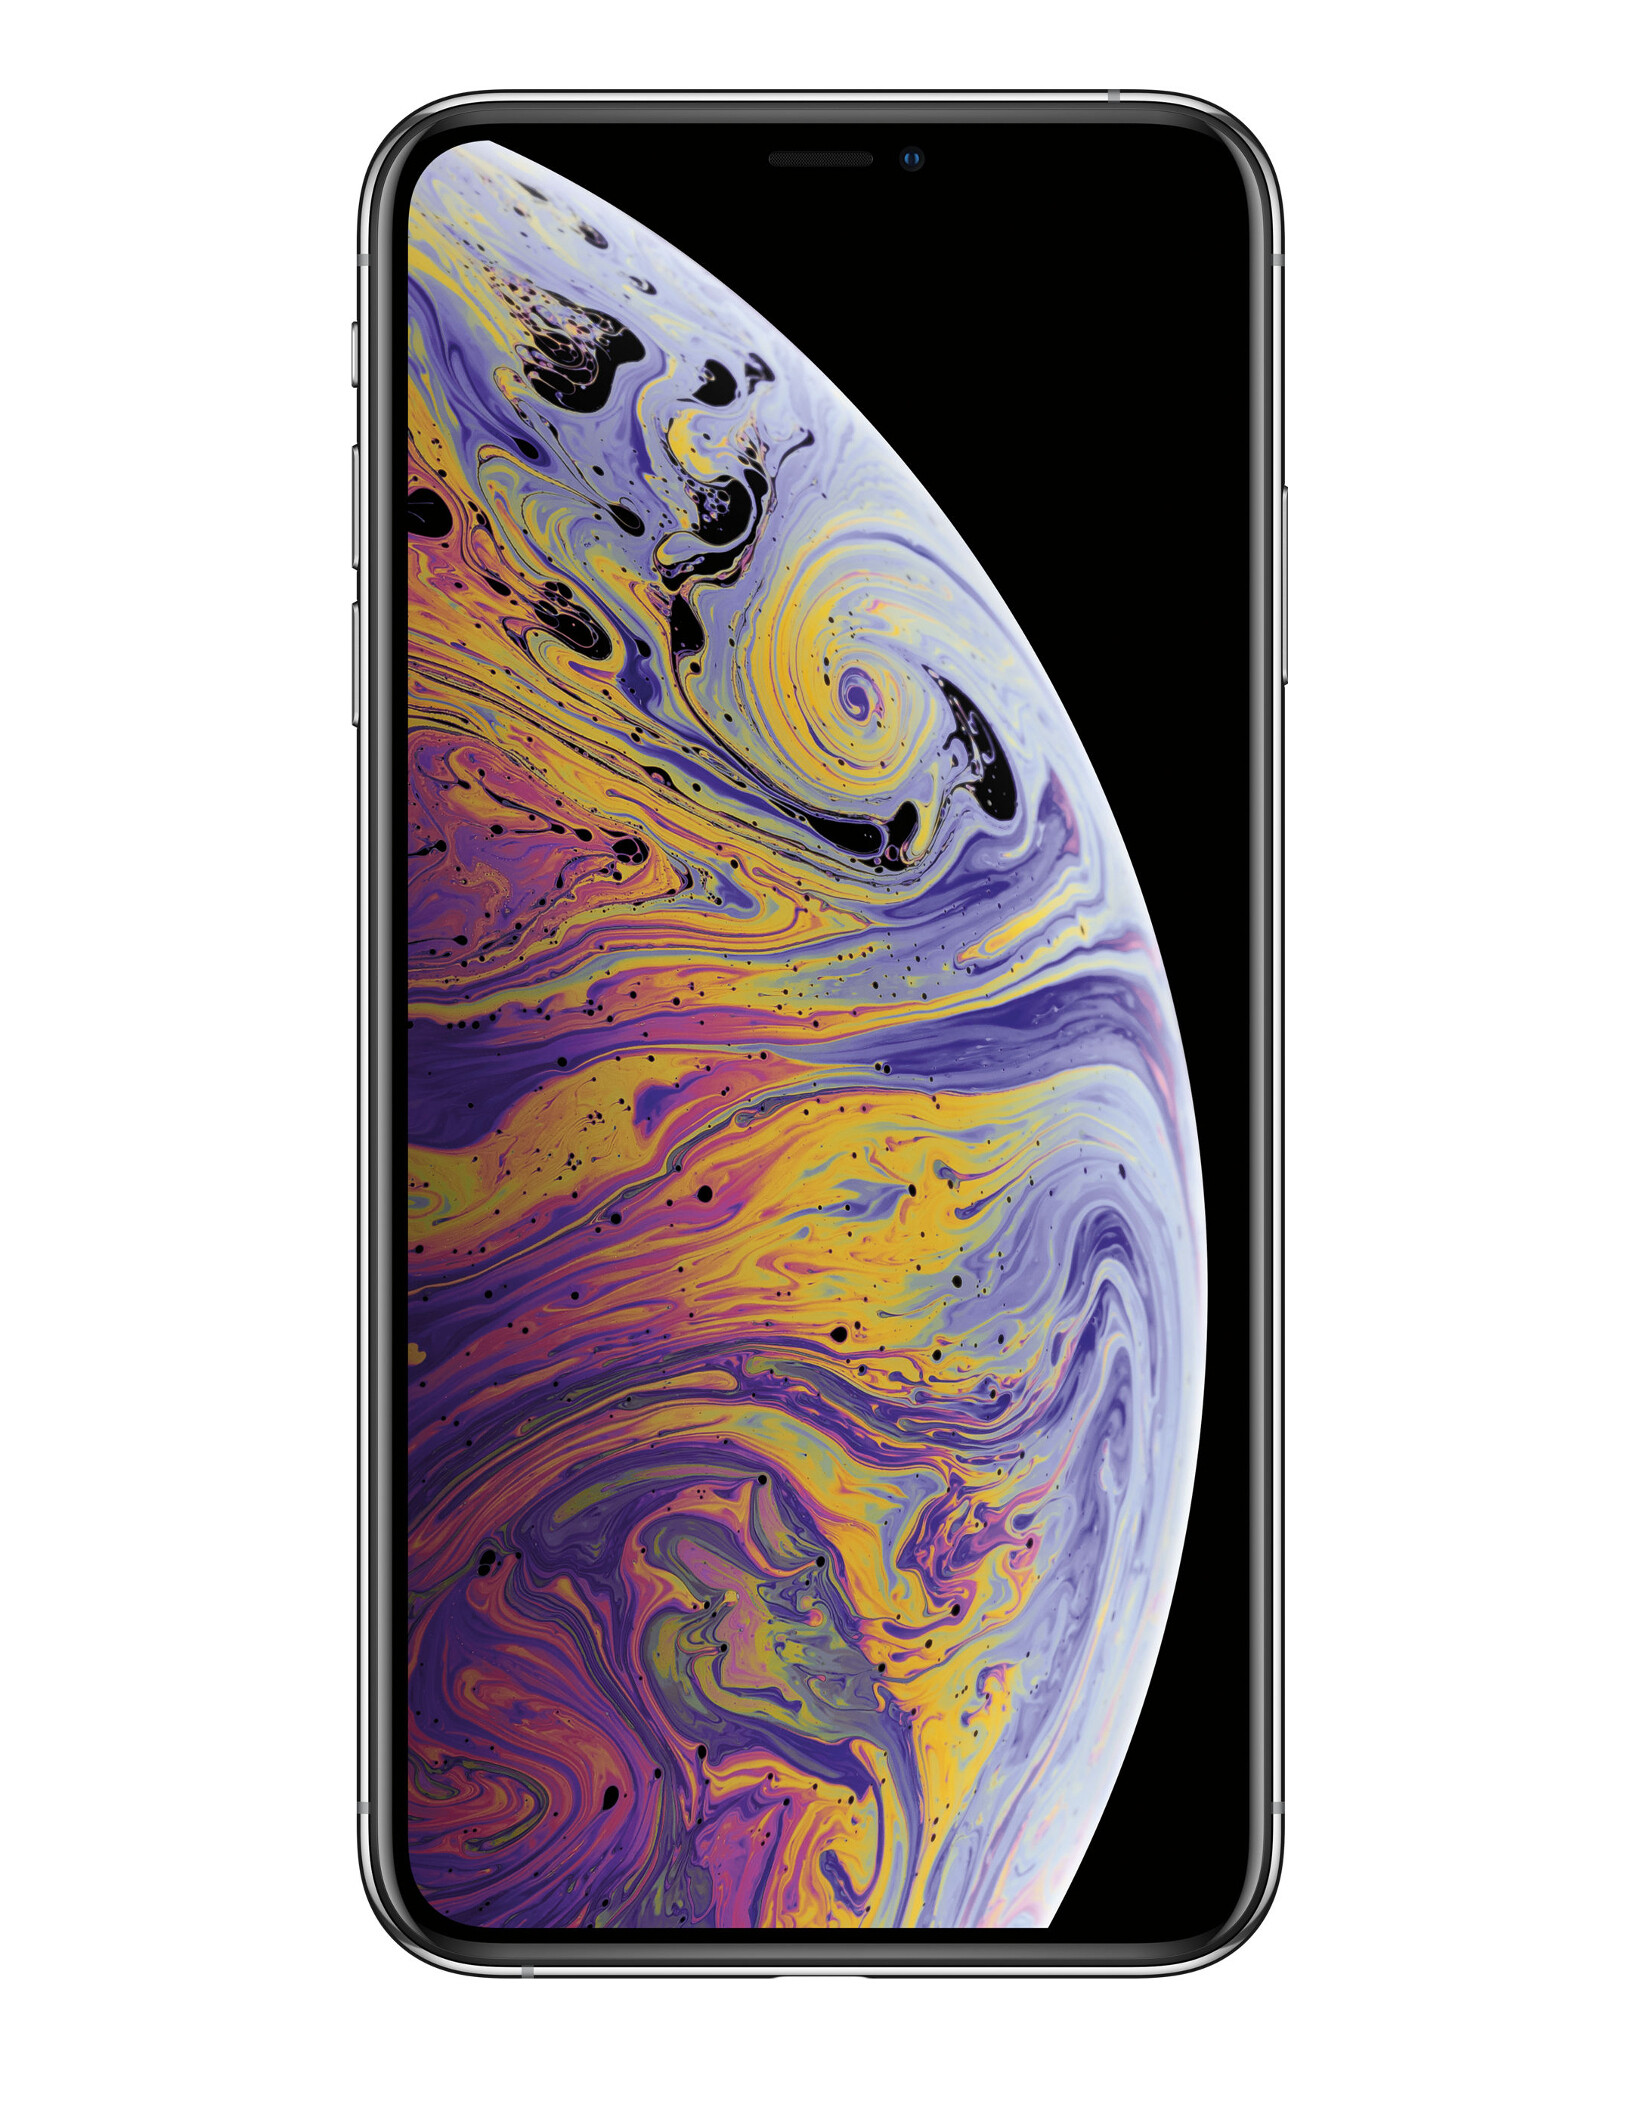 IPHONE XS MAX SPECIFICATIONS